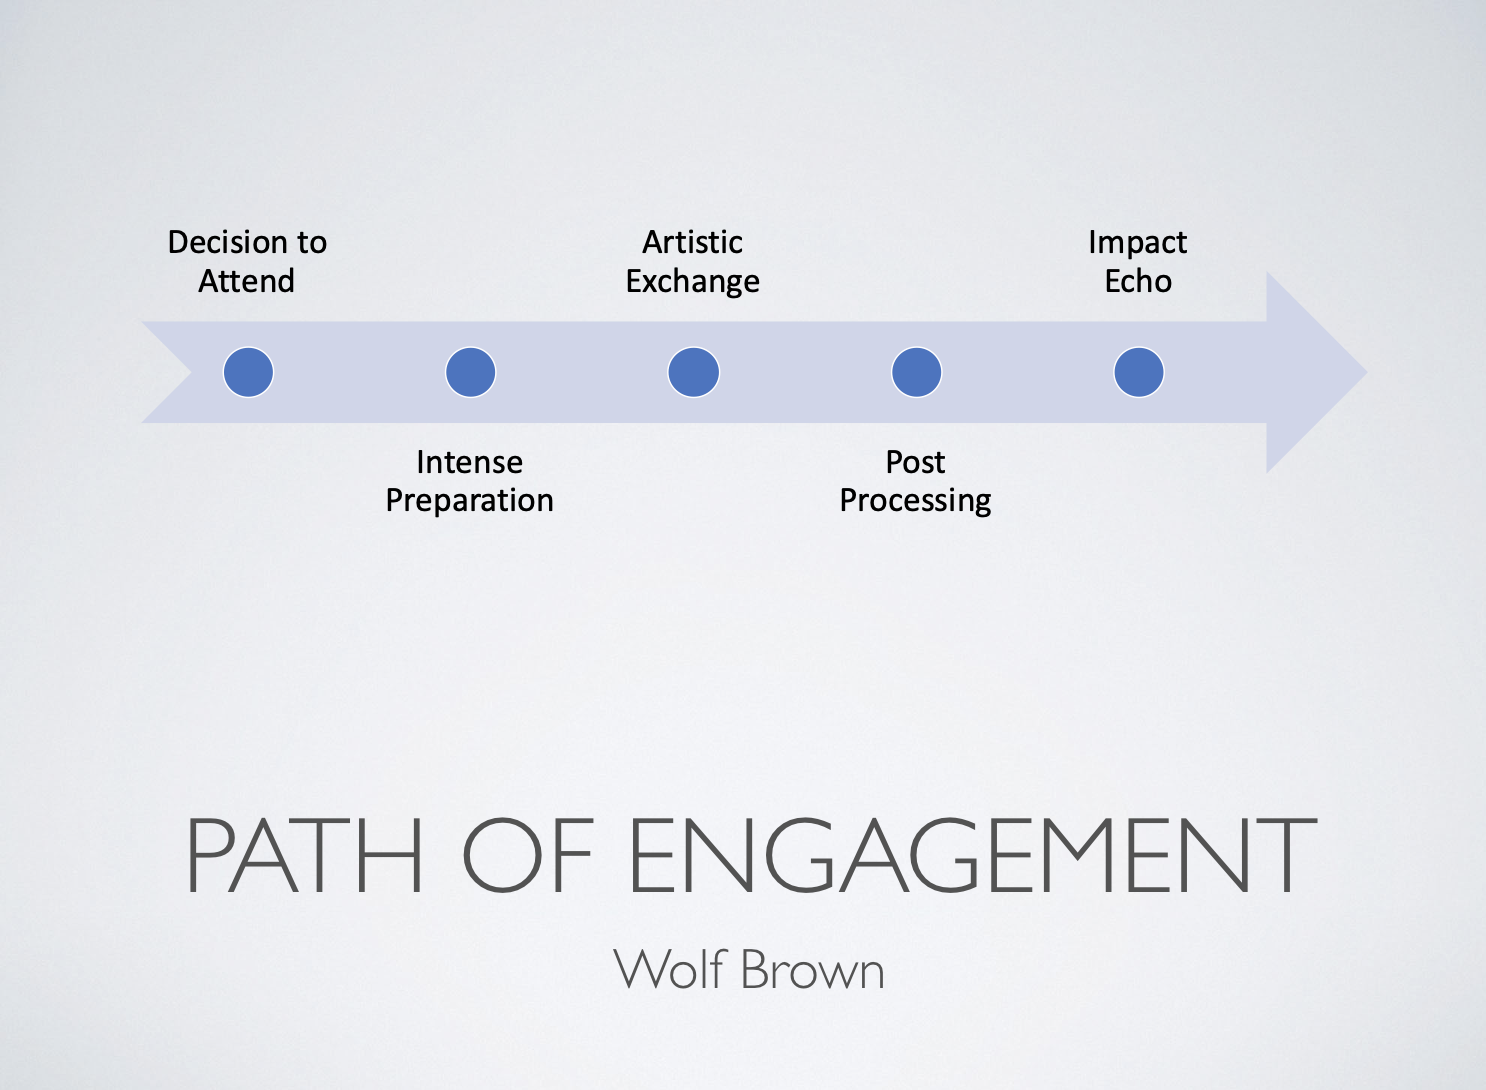 Source: Author's Keynote slide representation of WolfBrown's Arc of Engagement